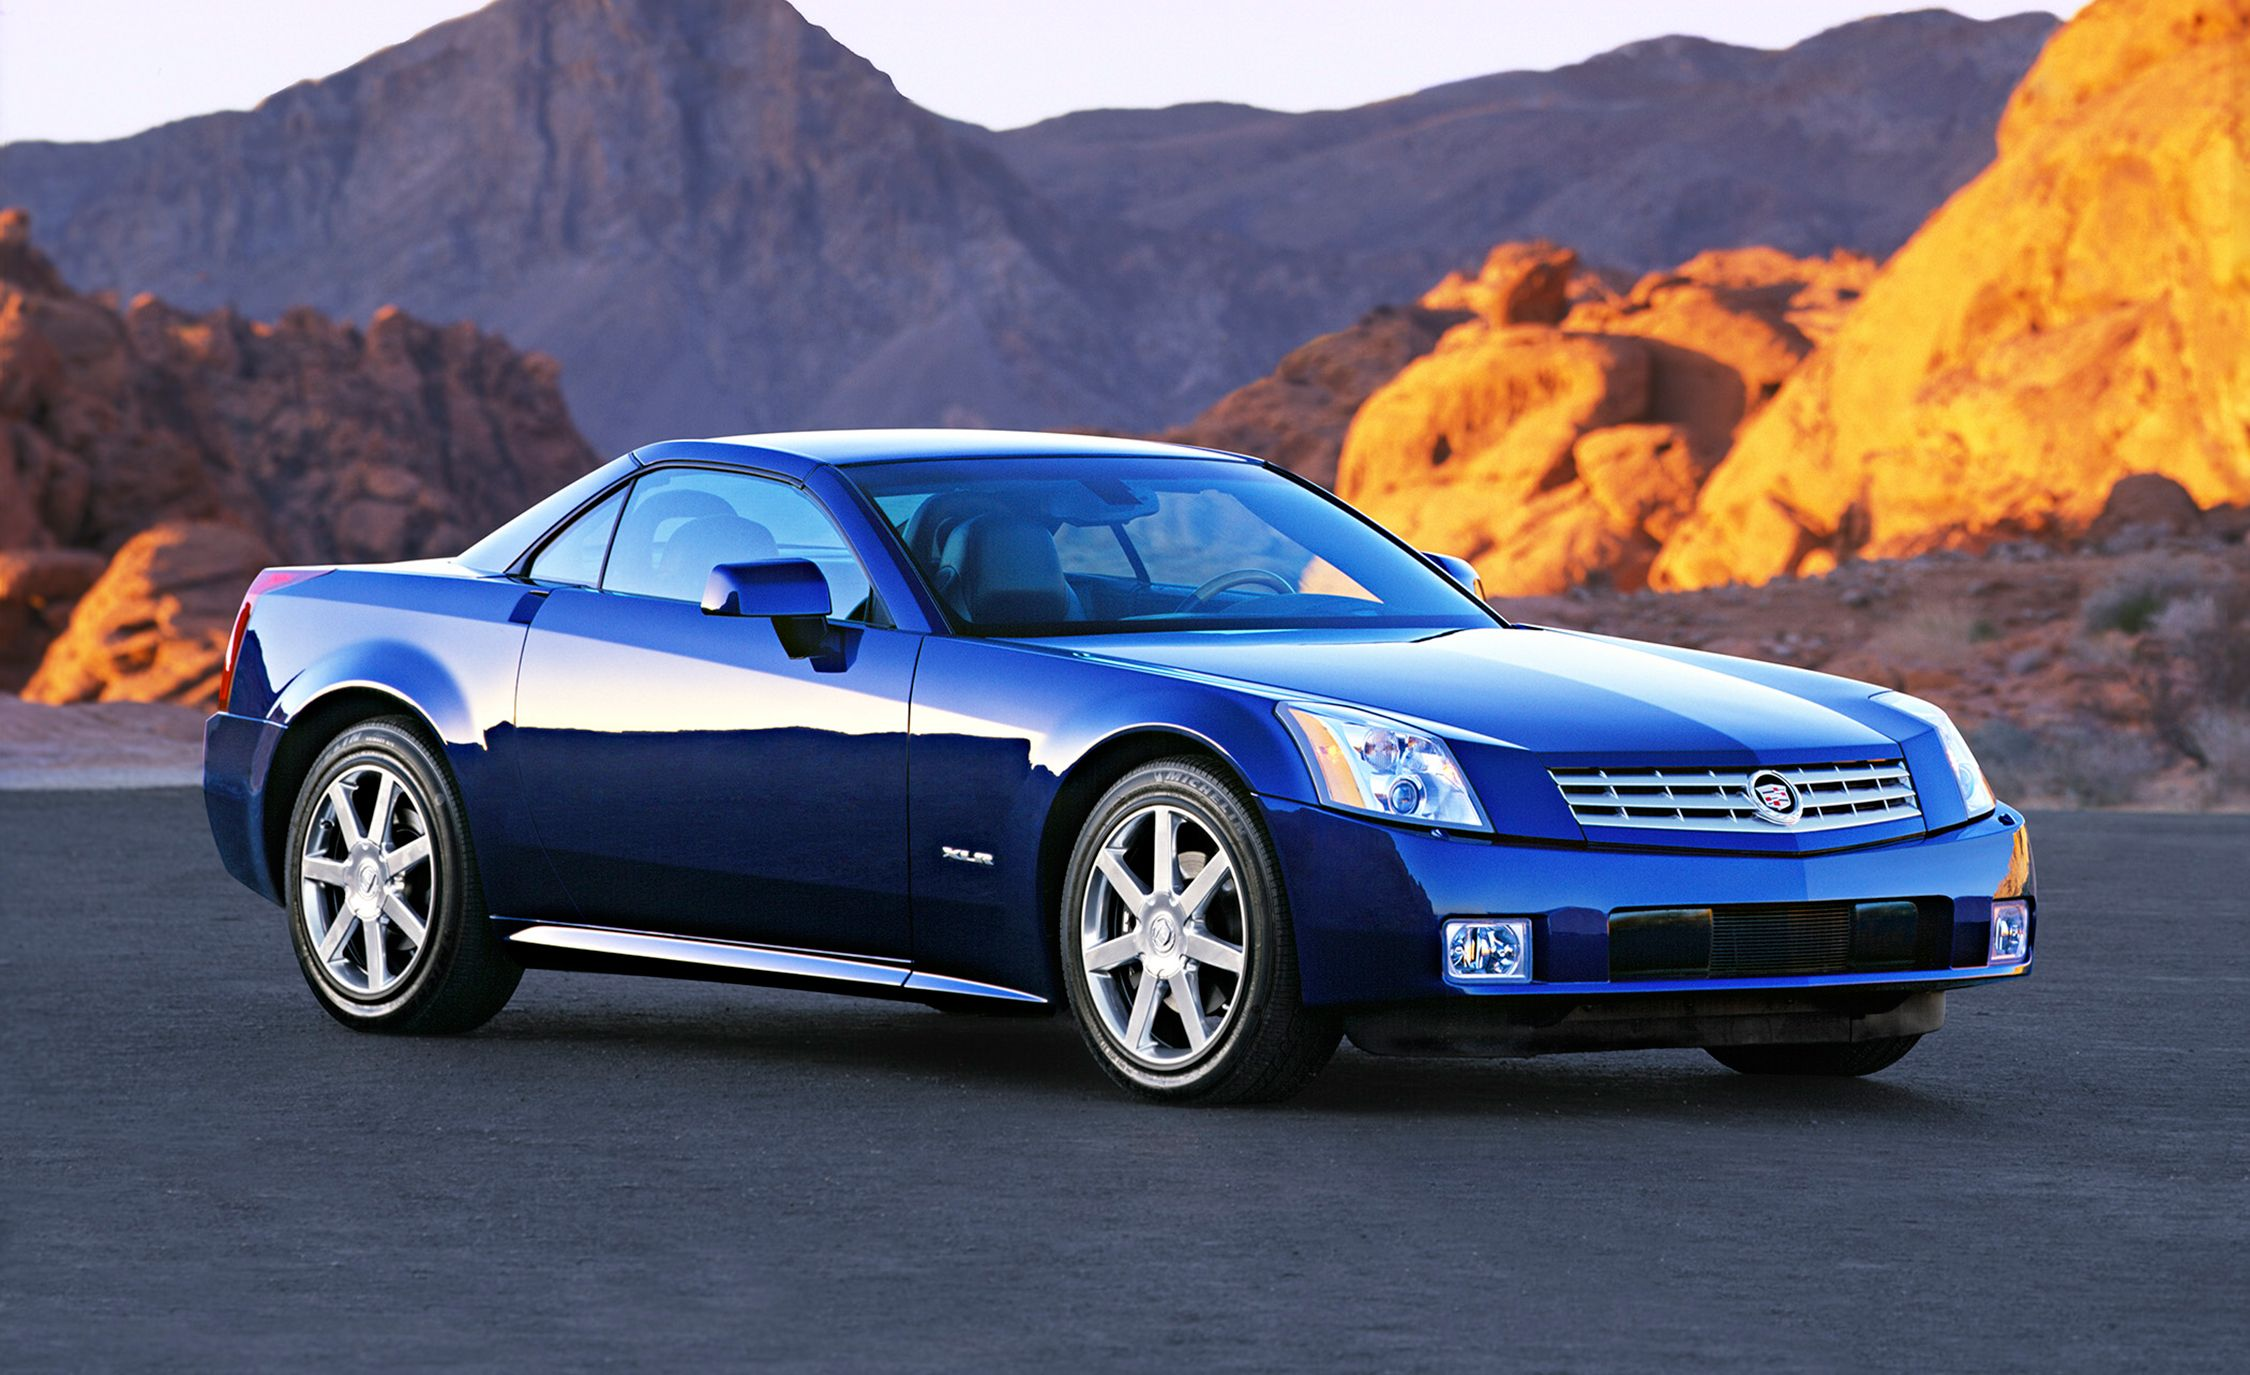 The 20 Biggest Automotive Flops of the Past 30 Years